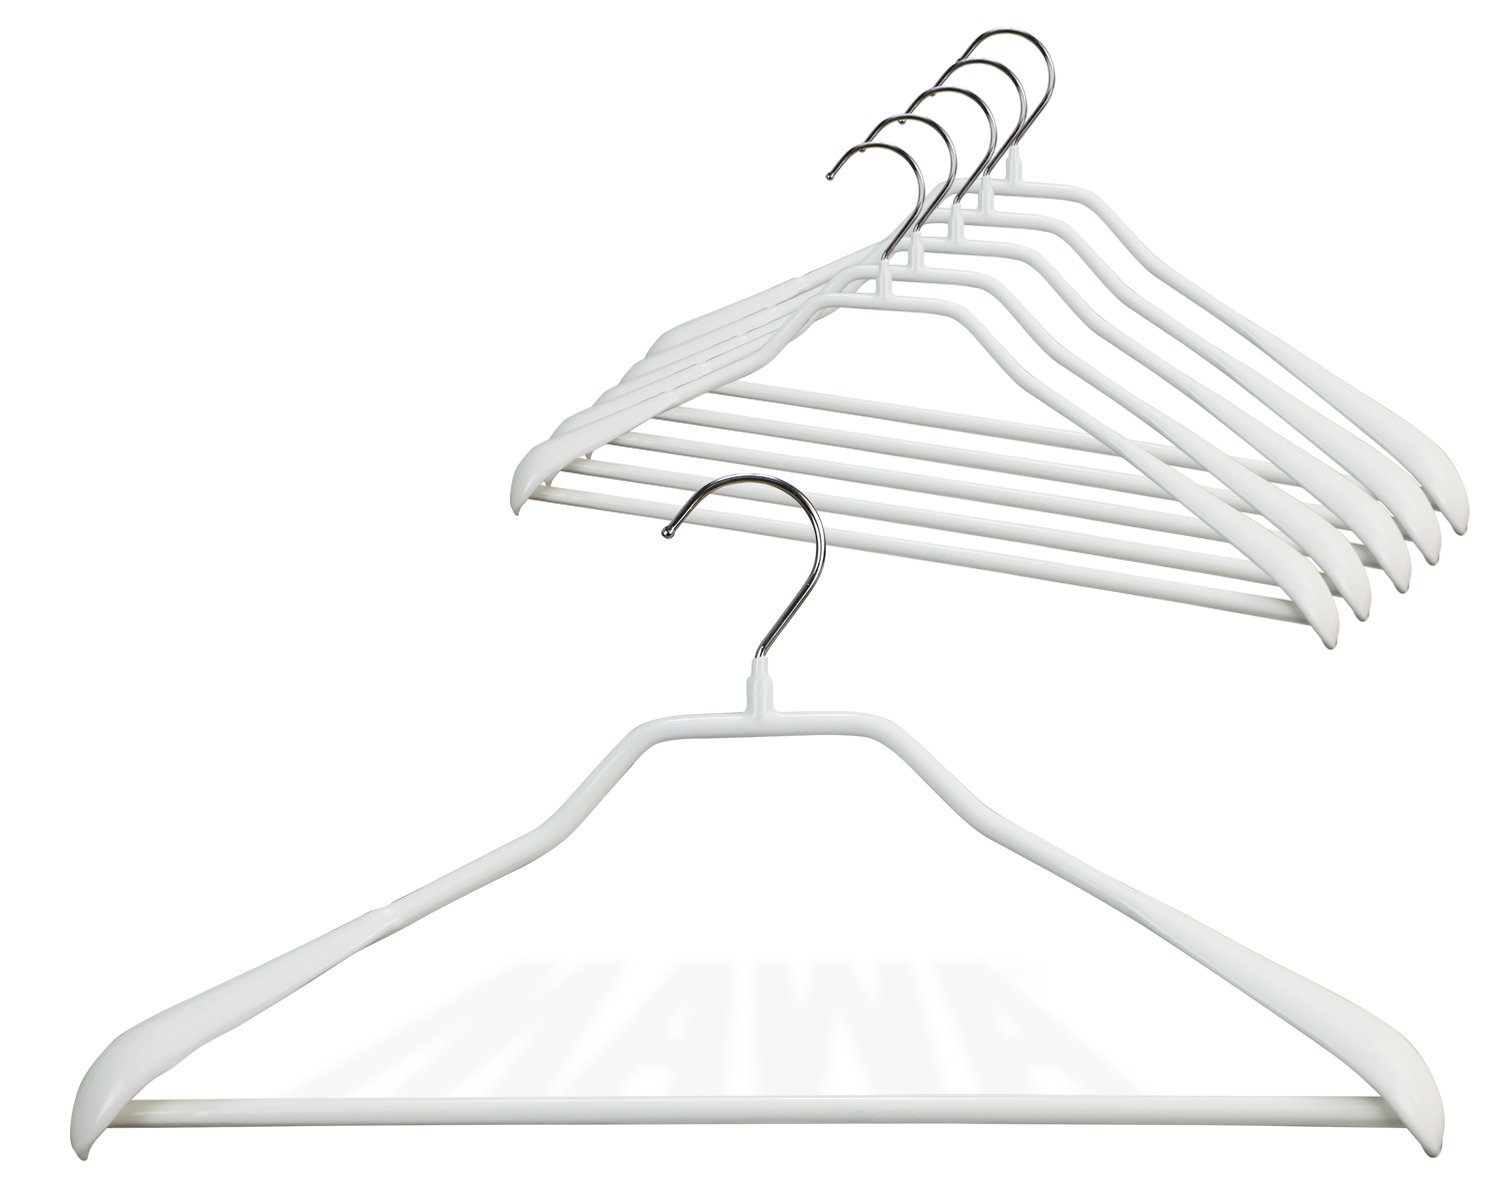 "Mawa by Reston Lloyd BodyForm Series Non-Slip Space-Saving Clothes Hanger with Bar for Pants, 16-1/2"", Style 42/LS, Set of 6, White"